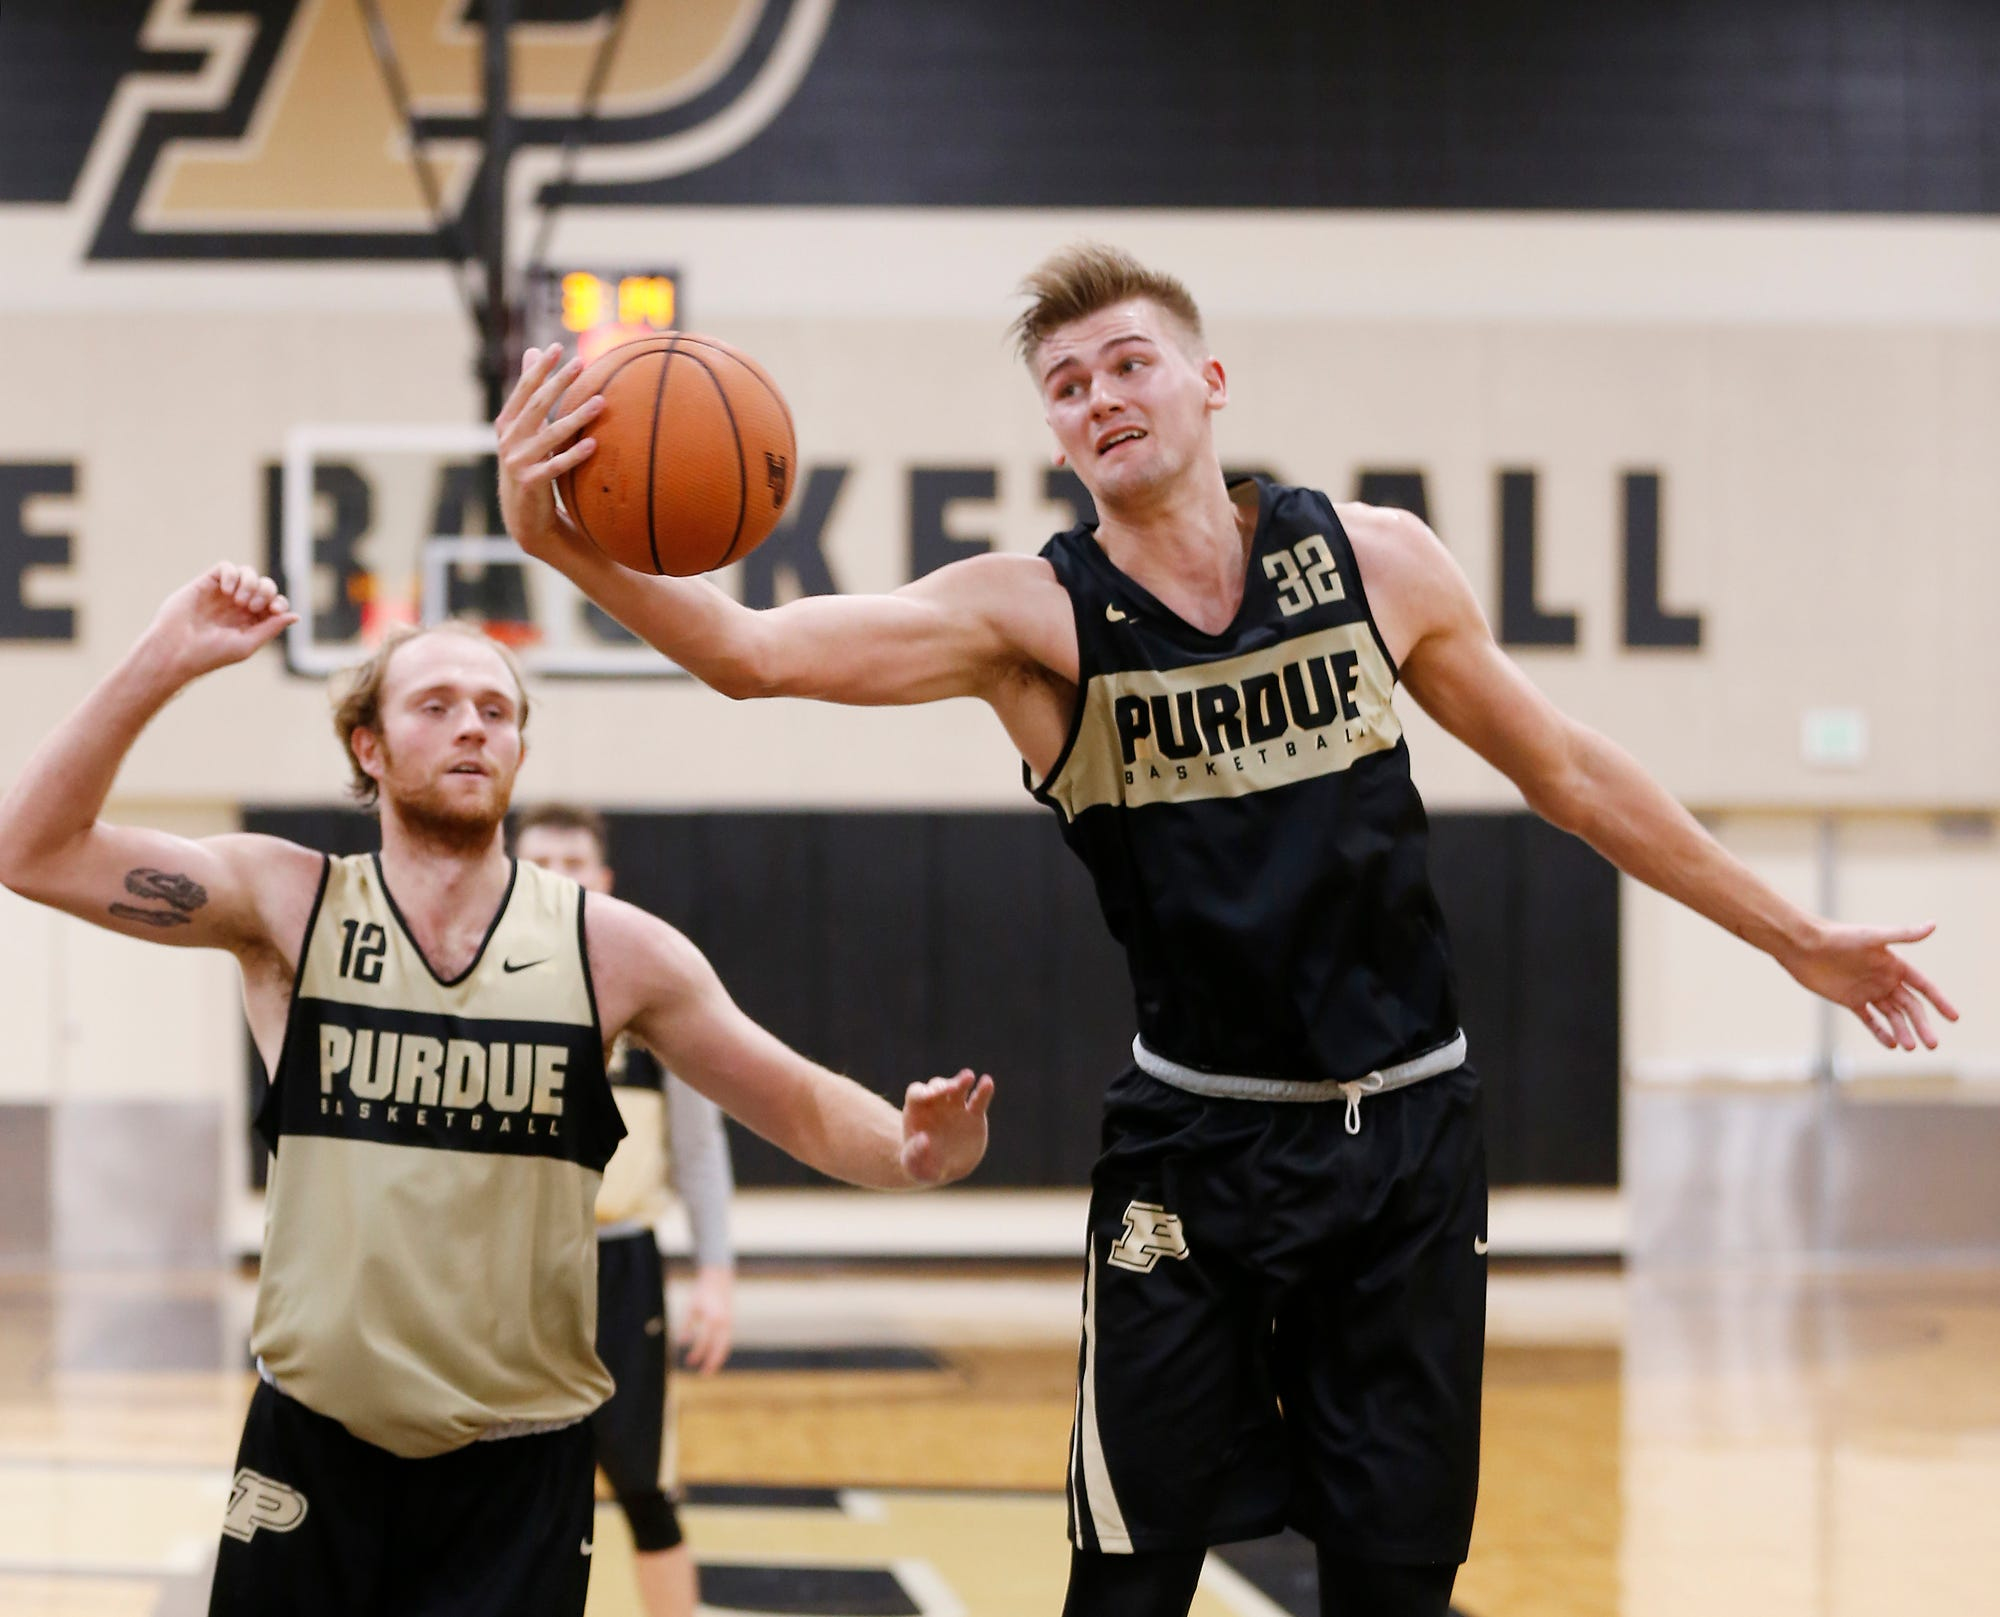 Matt Haarms pulls down a rebound during the first official practice of the season for Purdue men's basketball Tuesday, September 25, 2018, at Cardinal Court in Mackey Arena.